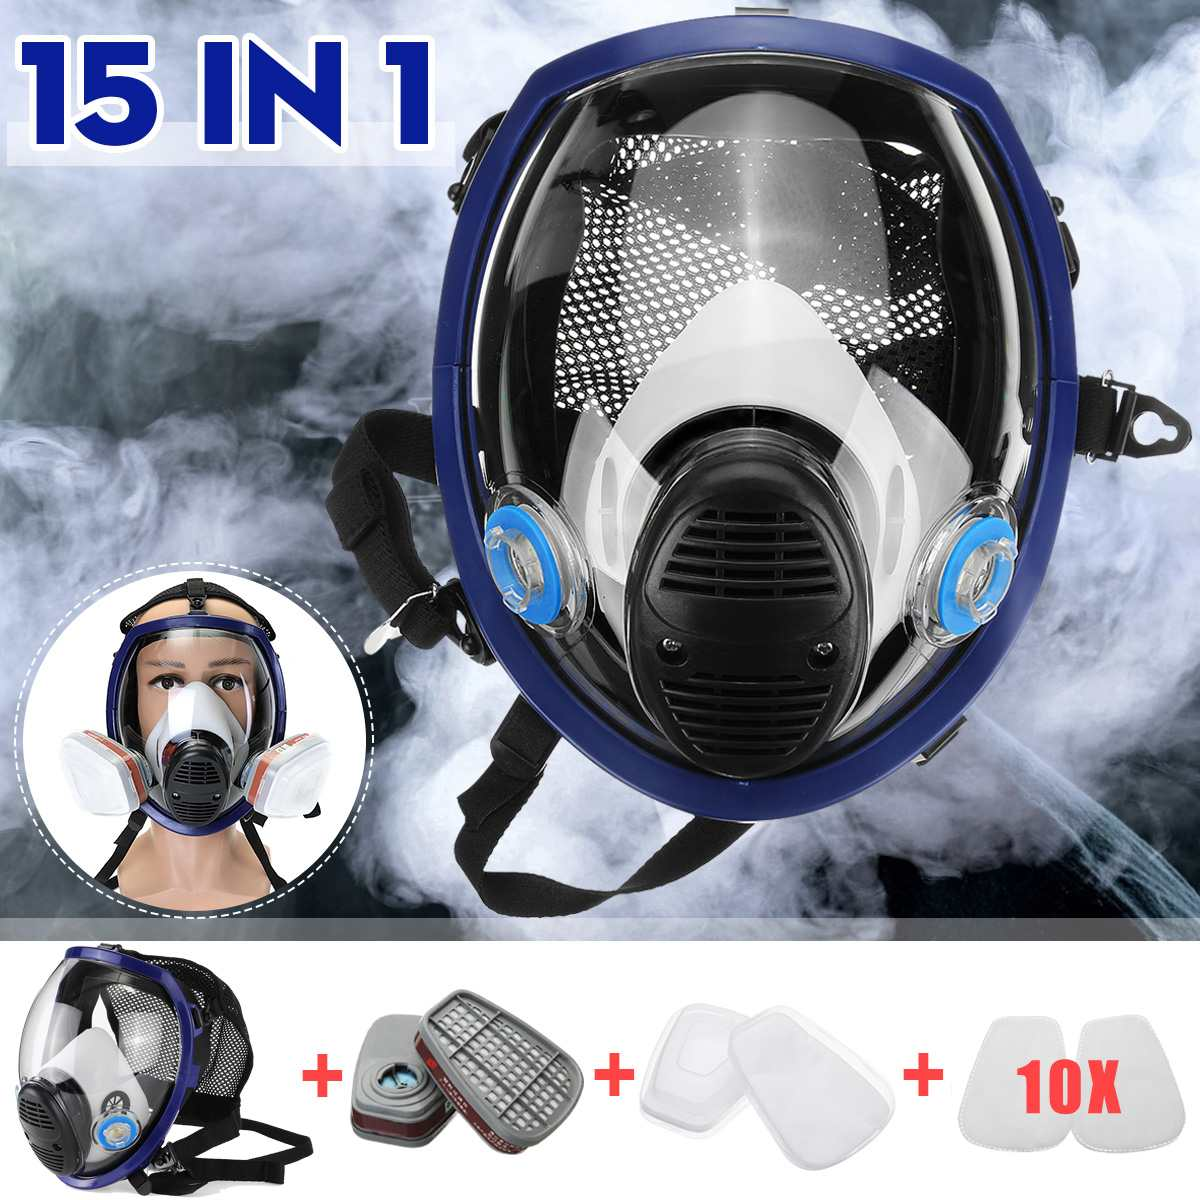 15 In 1 Large Size Full Face For-3M 6800 Gas Mask Facepiece Respirator Painting Spraying Chemical Laboratory Medical Safety Mask